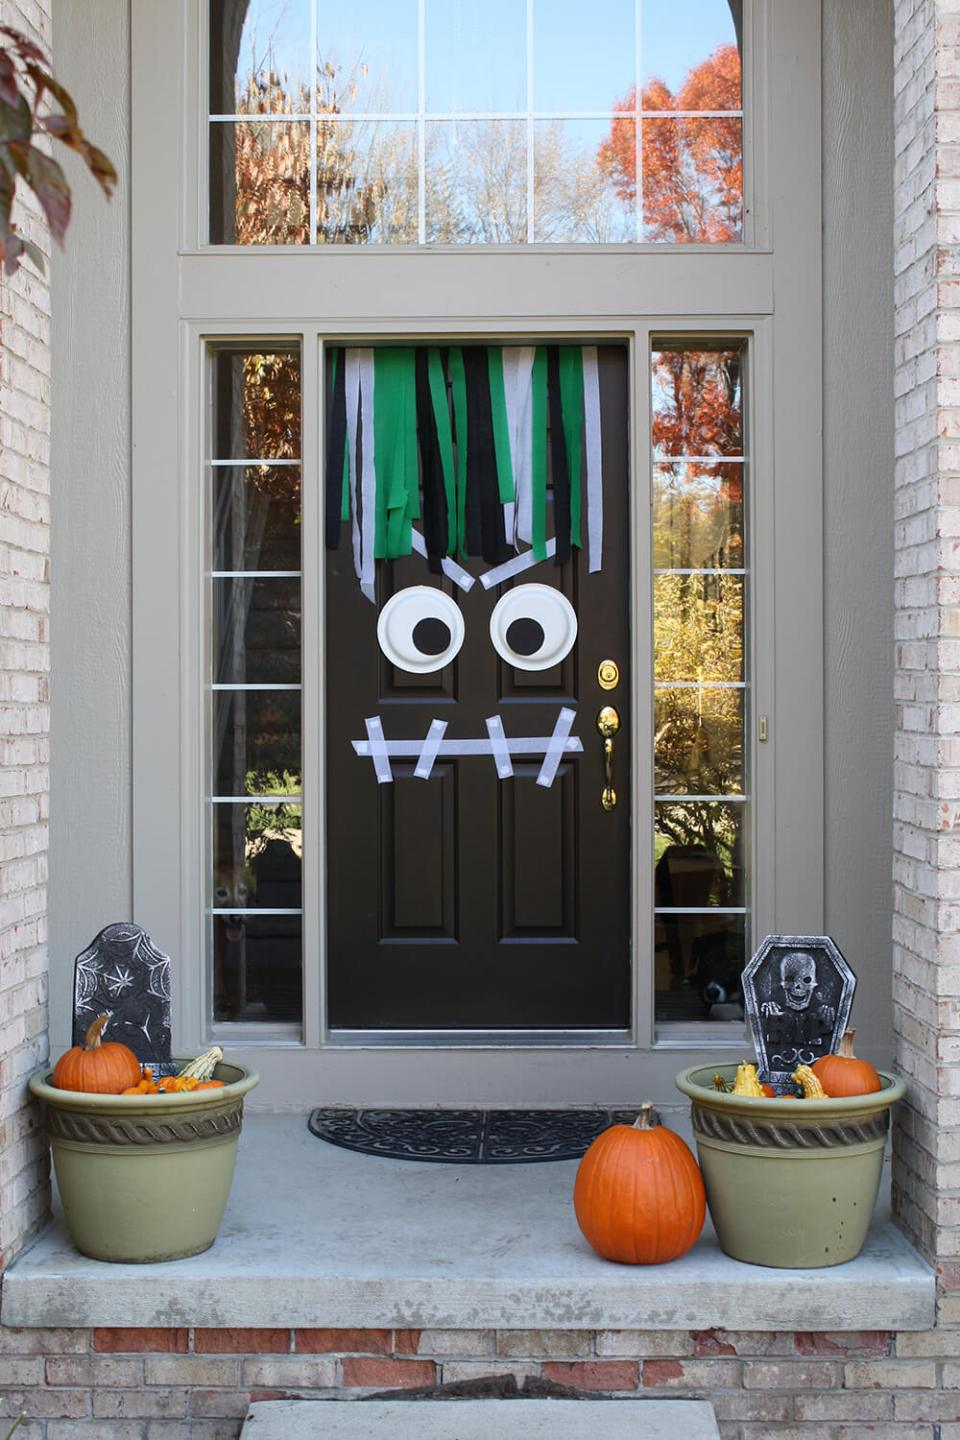 Halloween Door Decoration Ideas: Streamer Fun Halloween Door